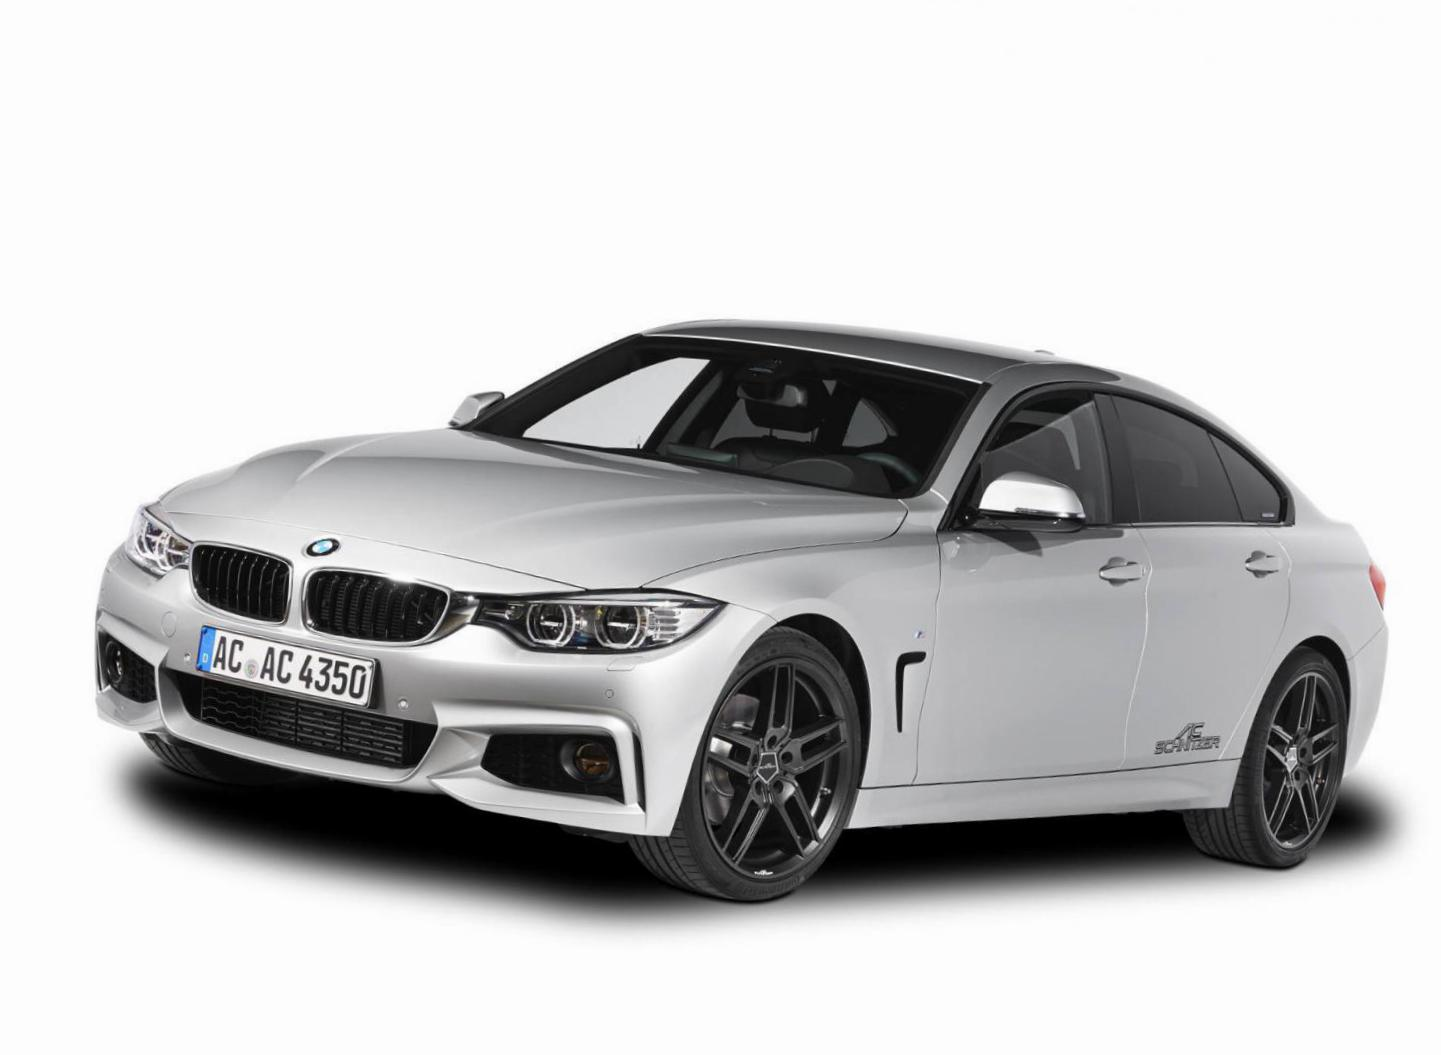 4 Series Gran Coupe (F36) BMW parts wagon